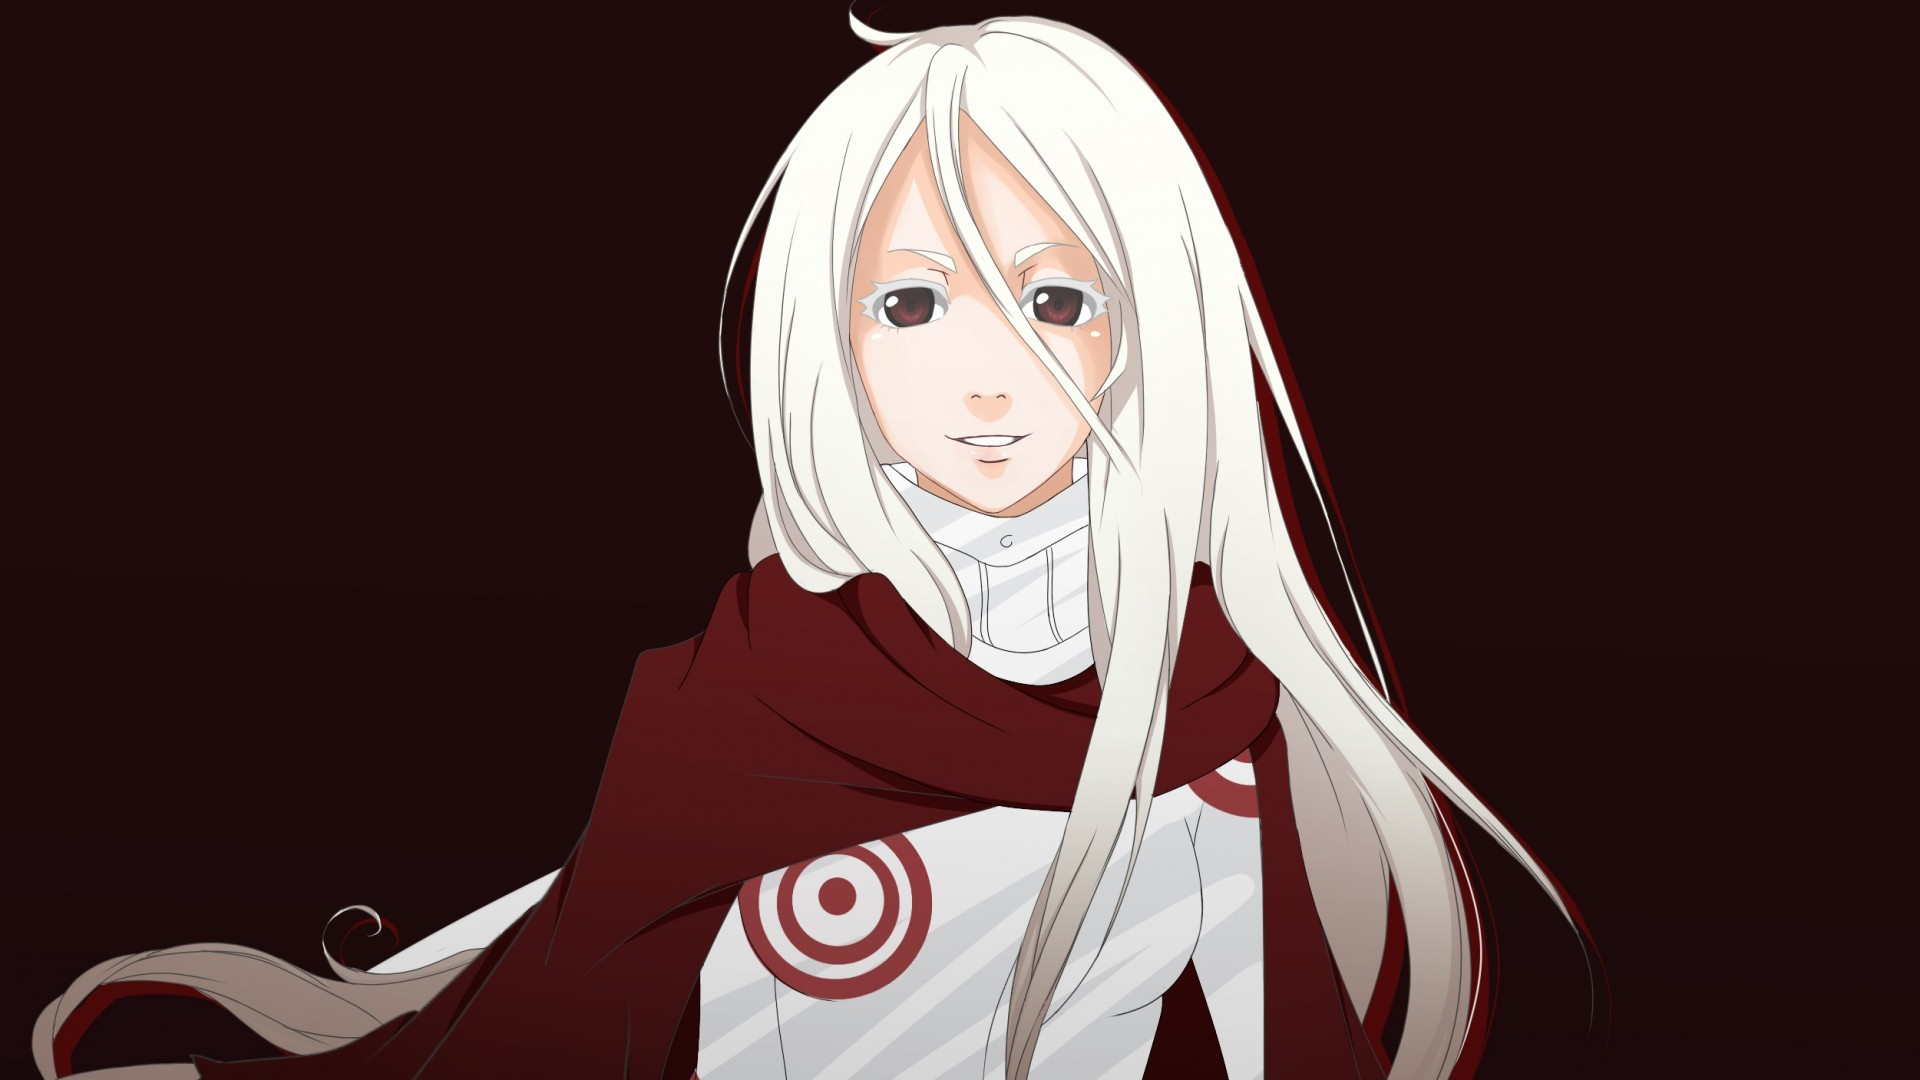 1920x1080 Download Deadman wonderland rokuro, Deadman wonderland romance wallpaper